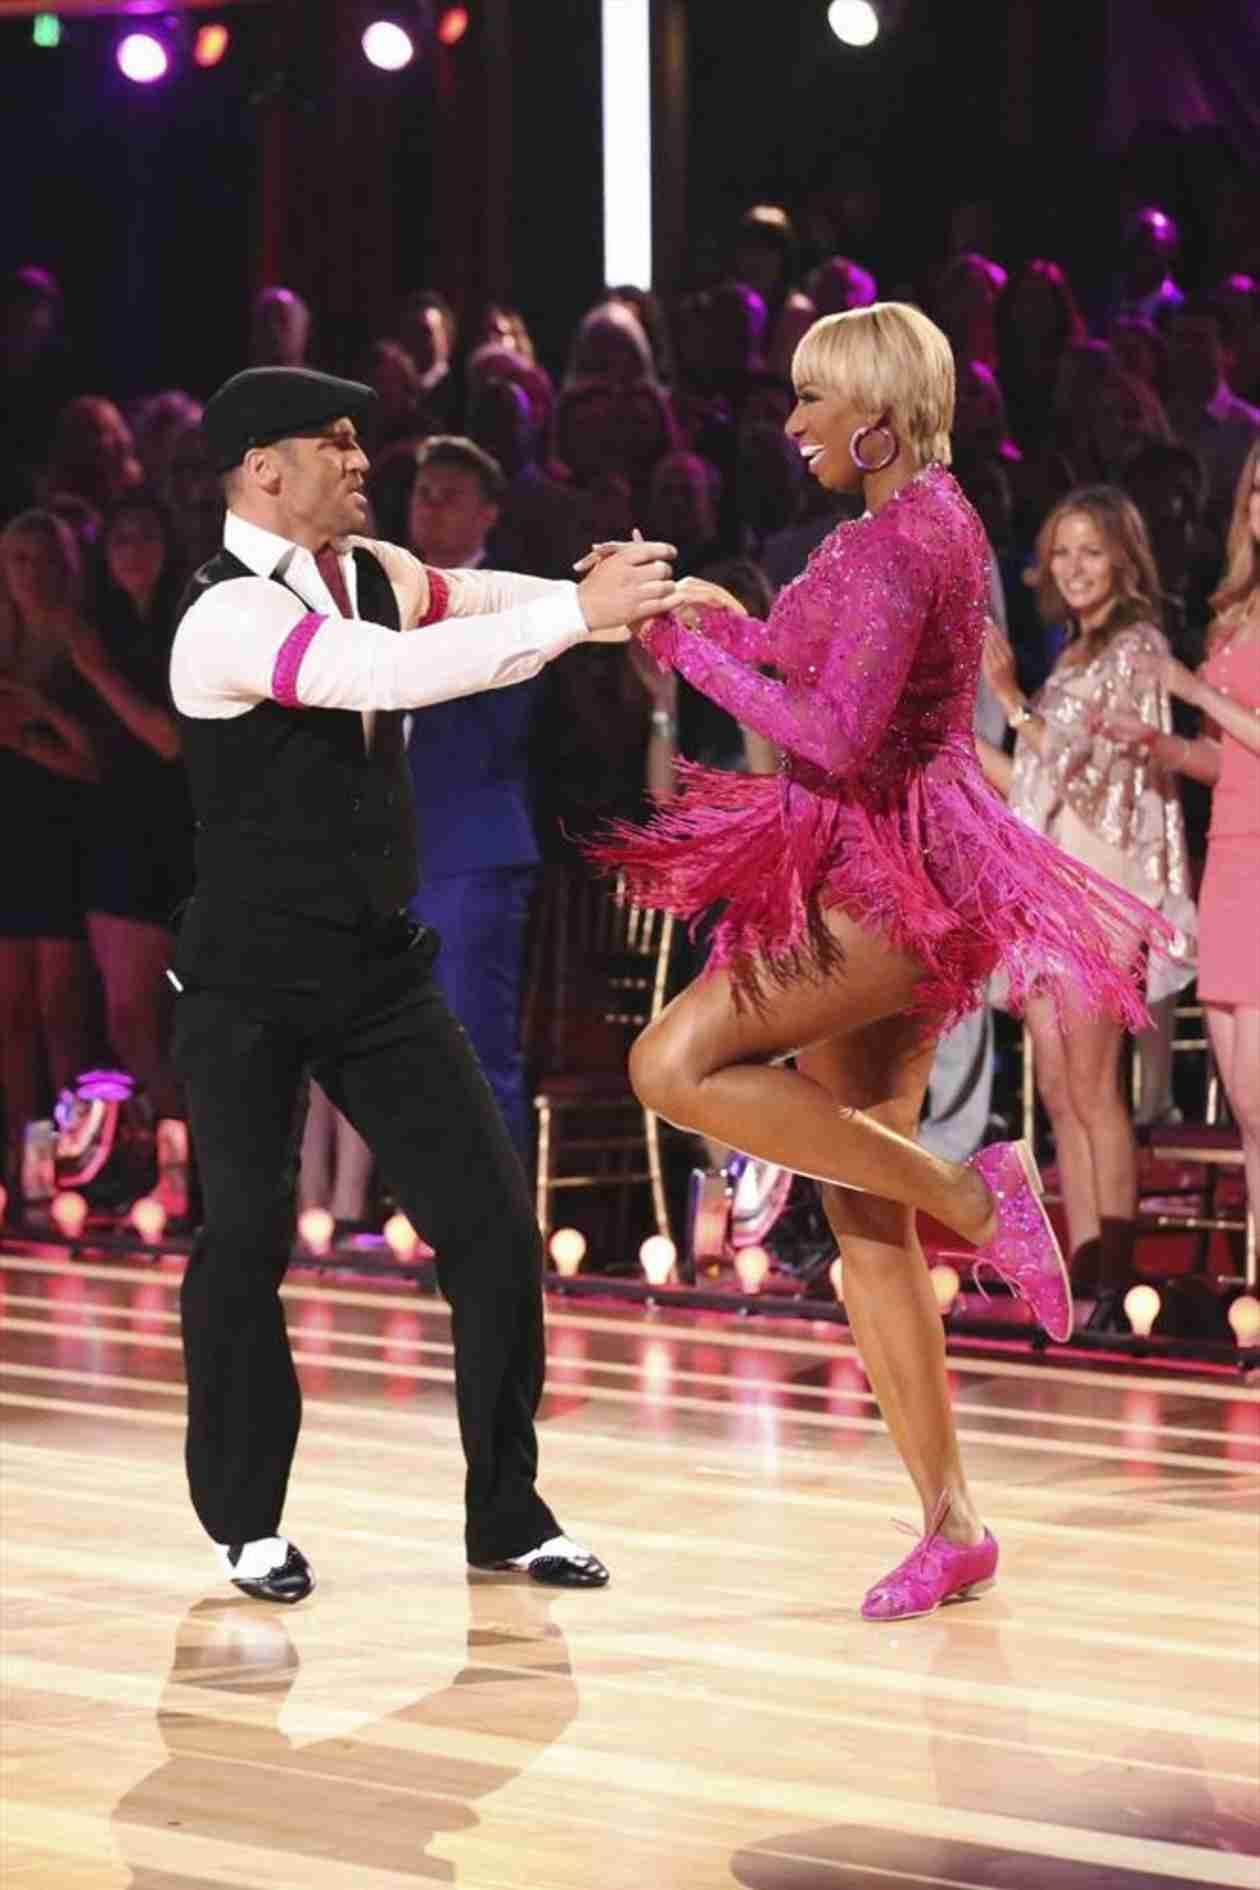 Dancing With the Stars 2014: NeNe Leakes and Tony Dovolani's Week 3 Rumba (VIDEO)